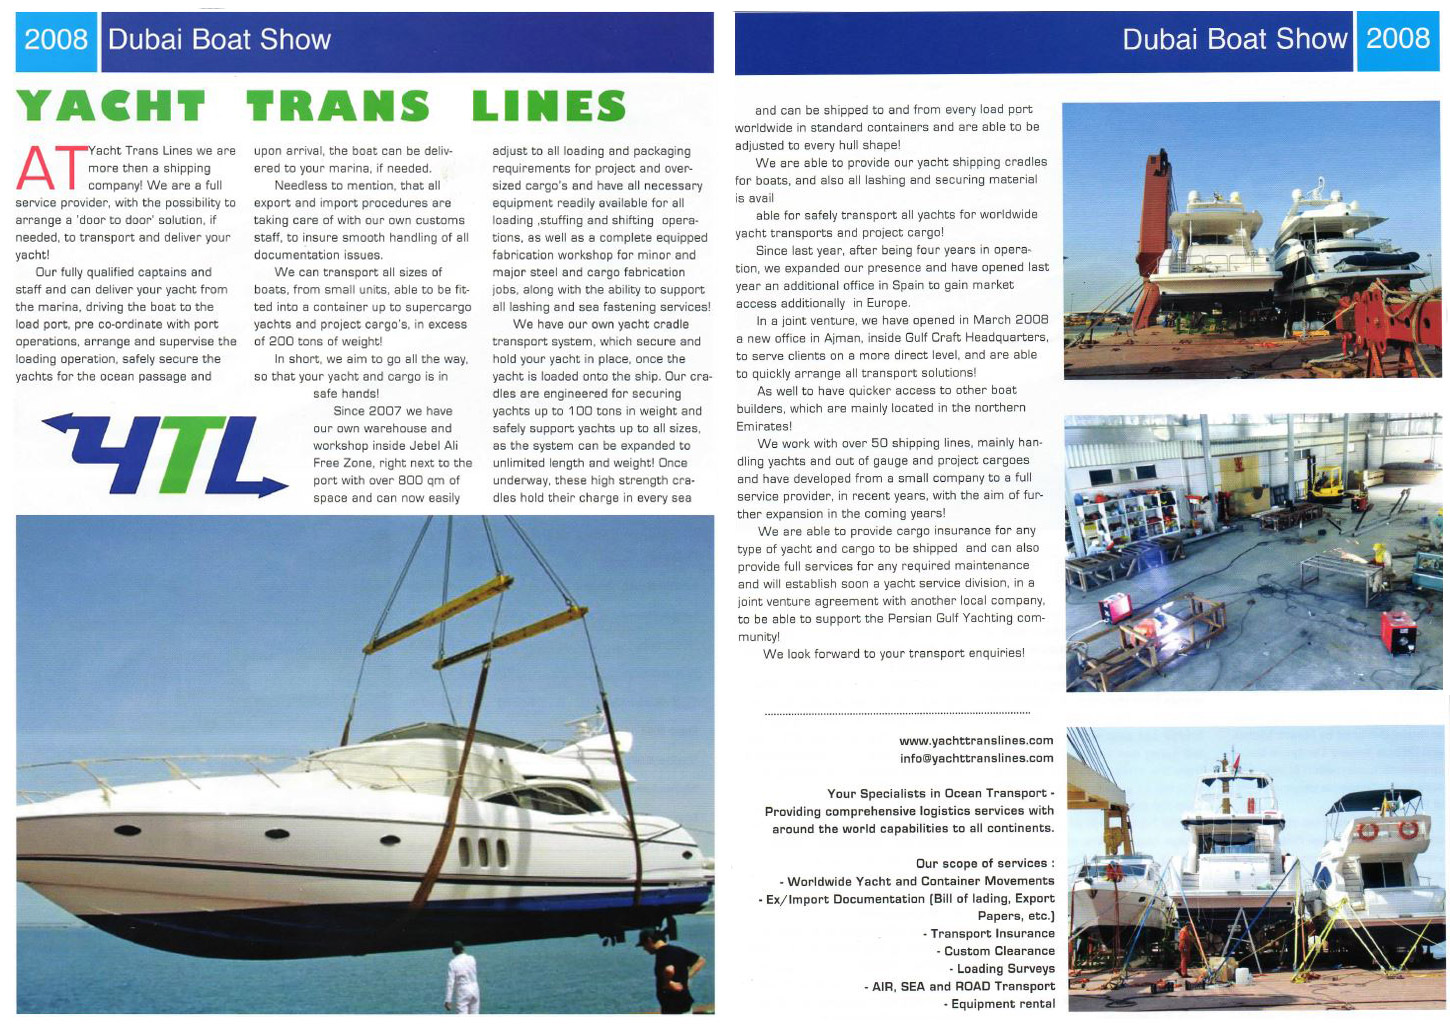 yacht-trans-lines-boat-show-article